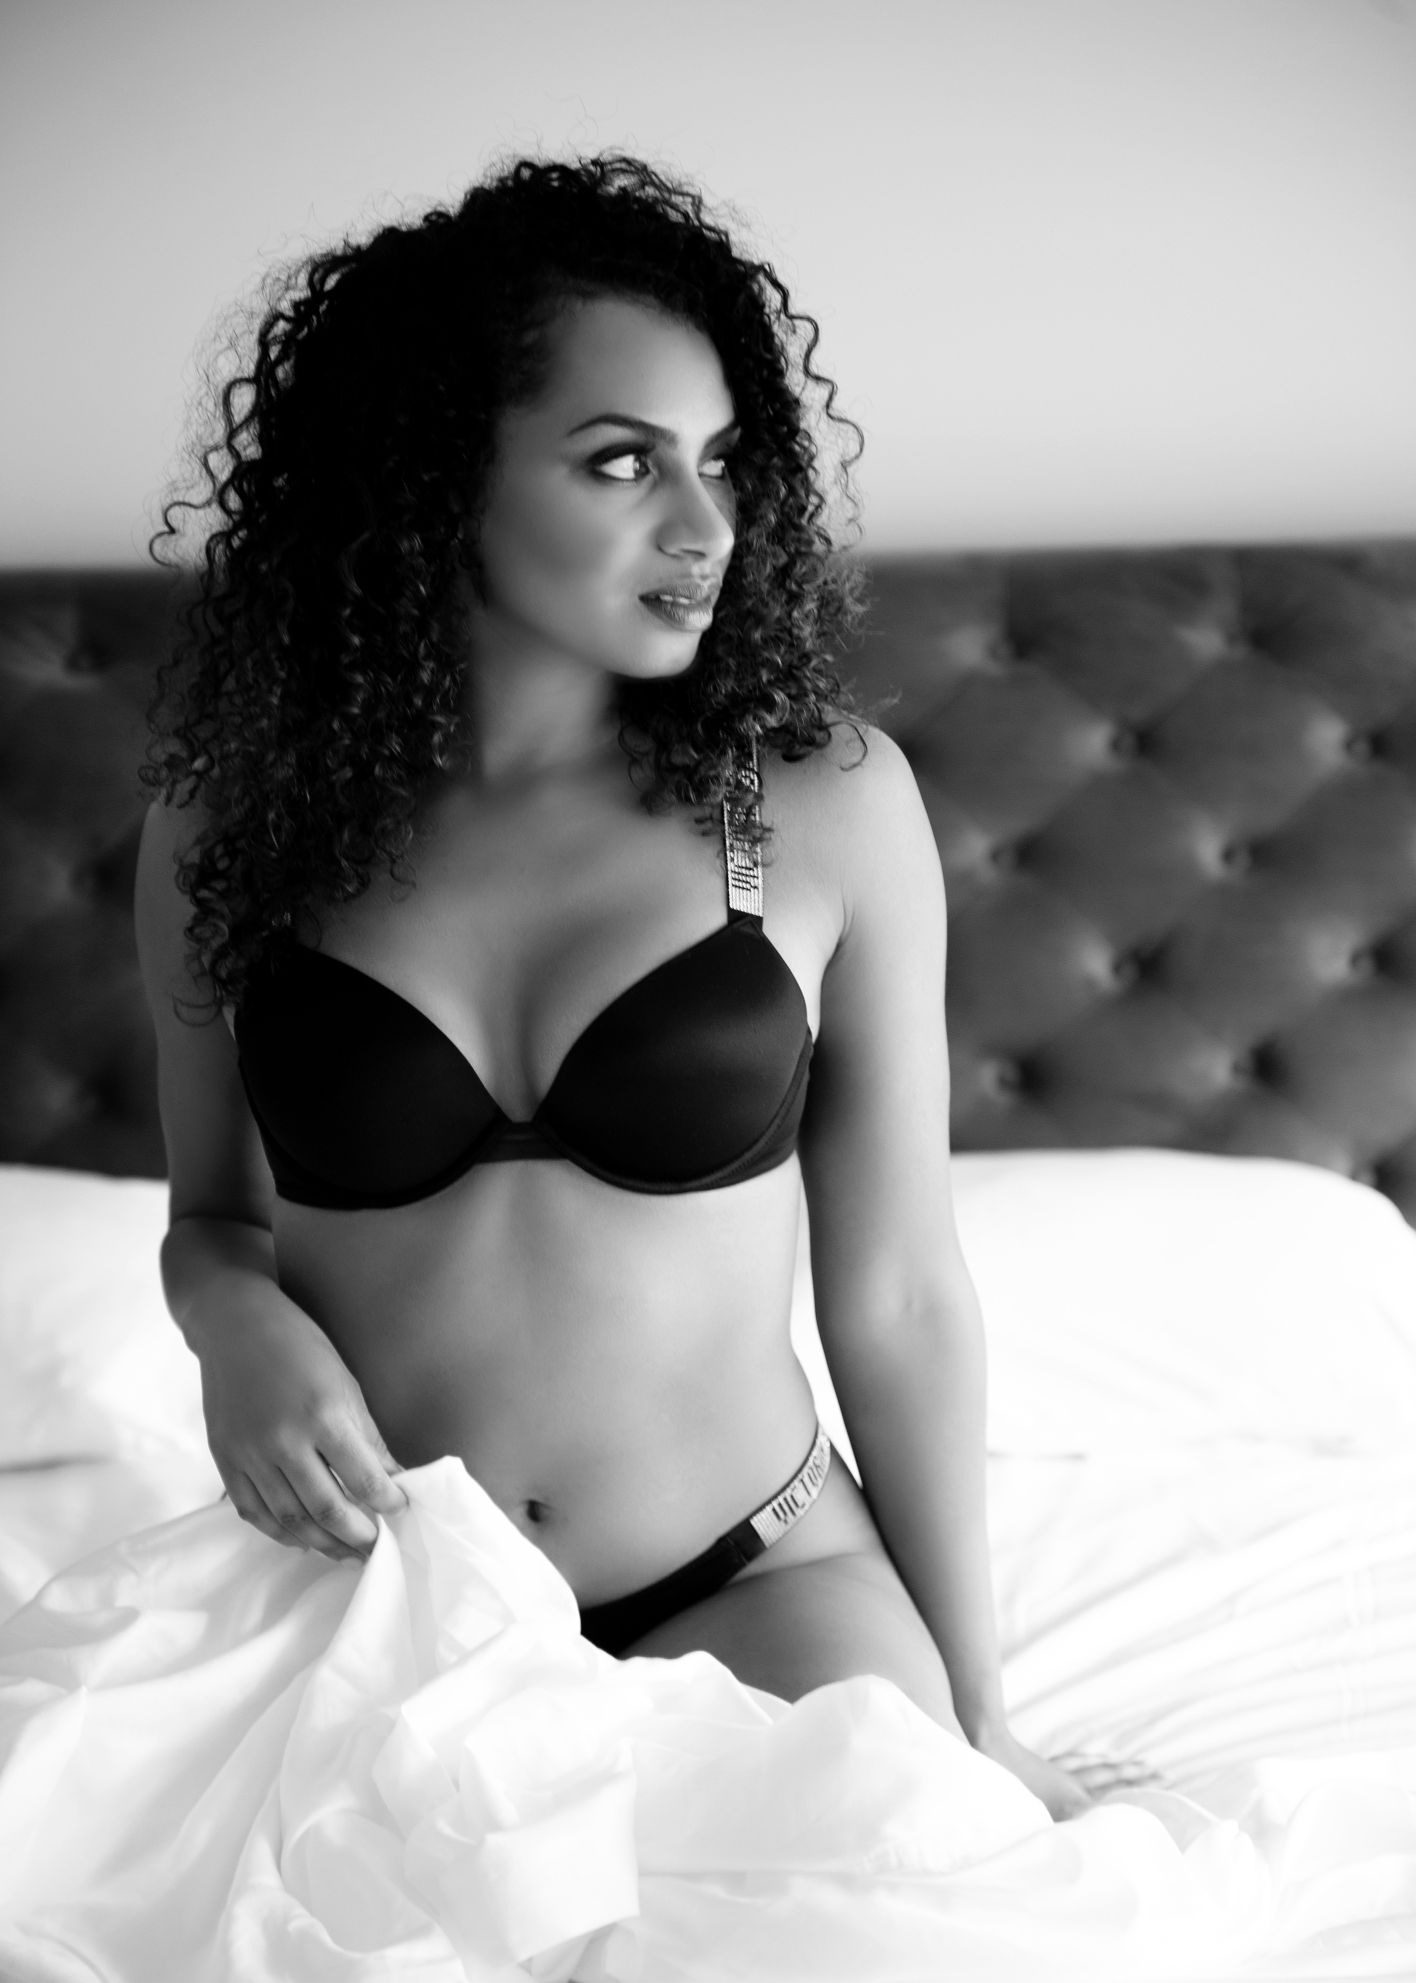 Vancouver boudoir black and white photography beautiful girl victoria secret bra panty 1